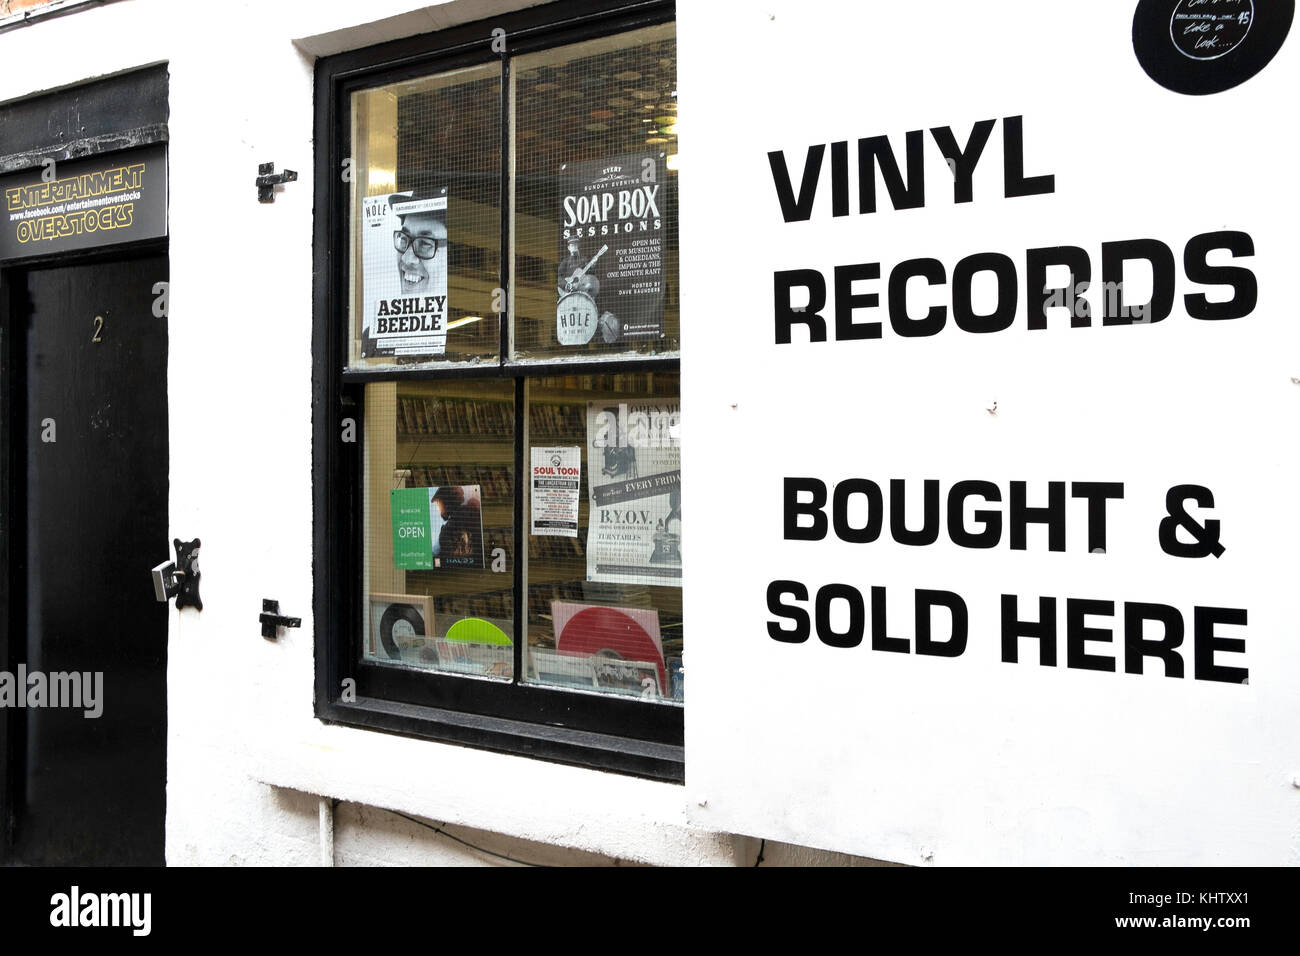 A small music shop in Northern England with a prominent sign Vinyl Records Bought and Sold Here - Stock Image